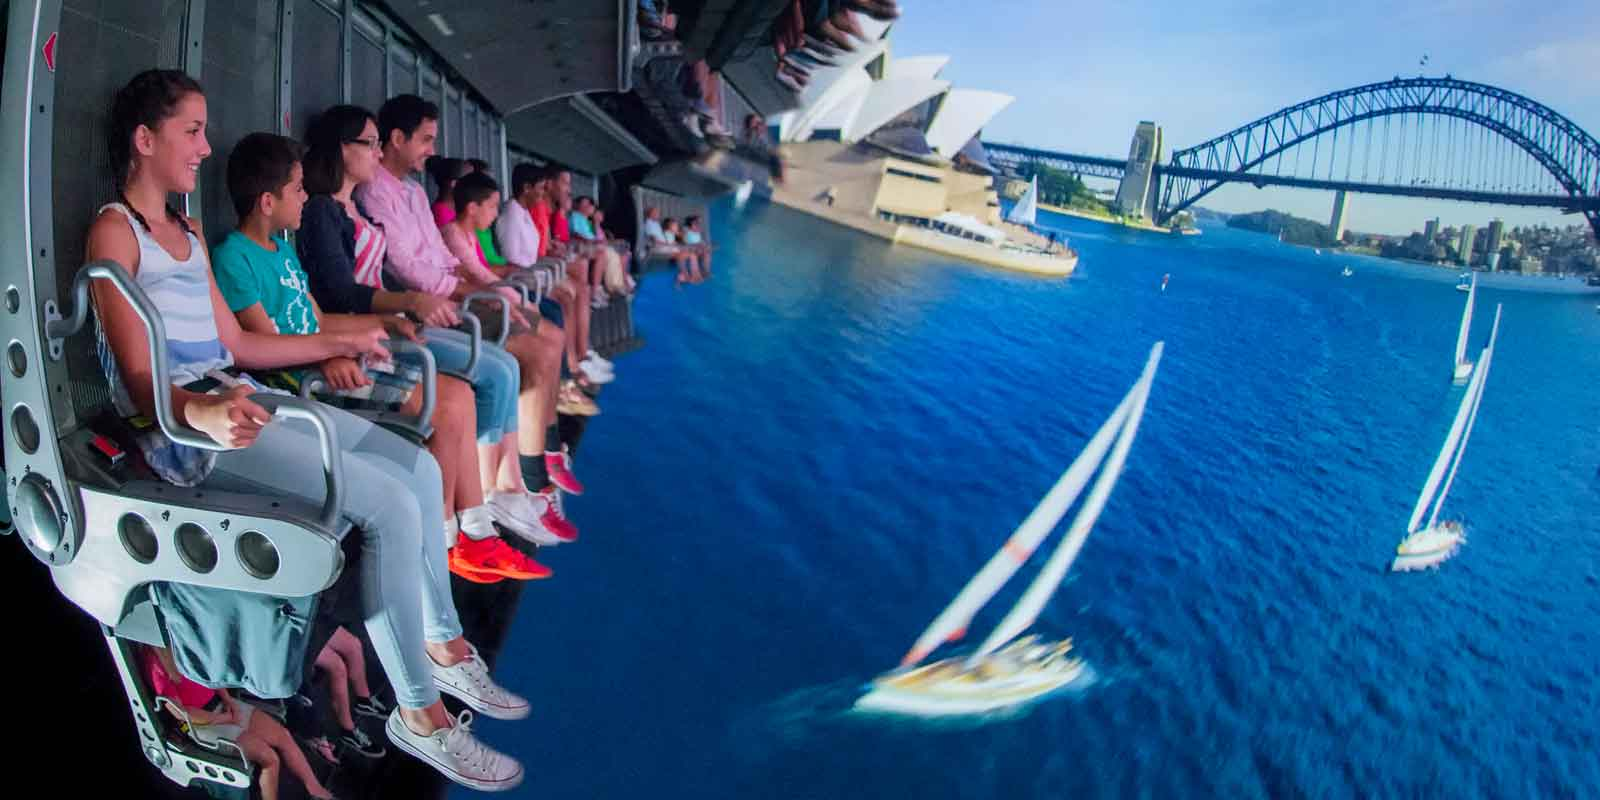 A group of people suspended in air in front of a massive virtual reality screen for the Epcot ride, Soarin.